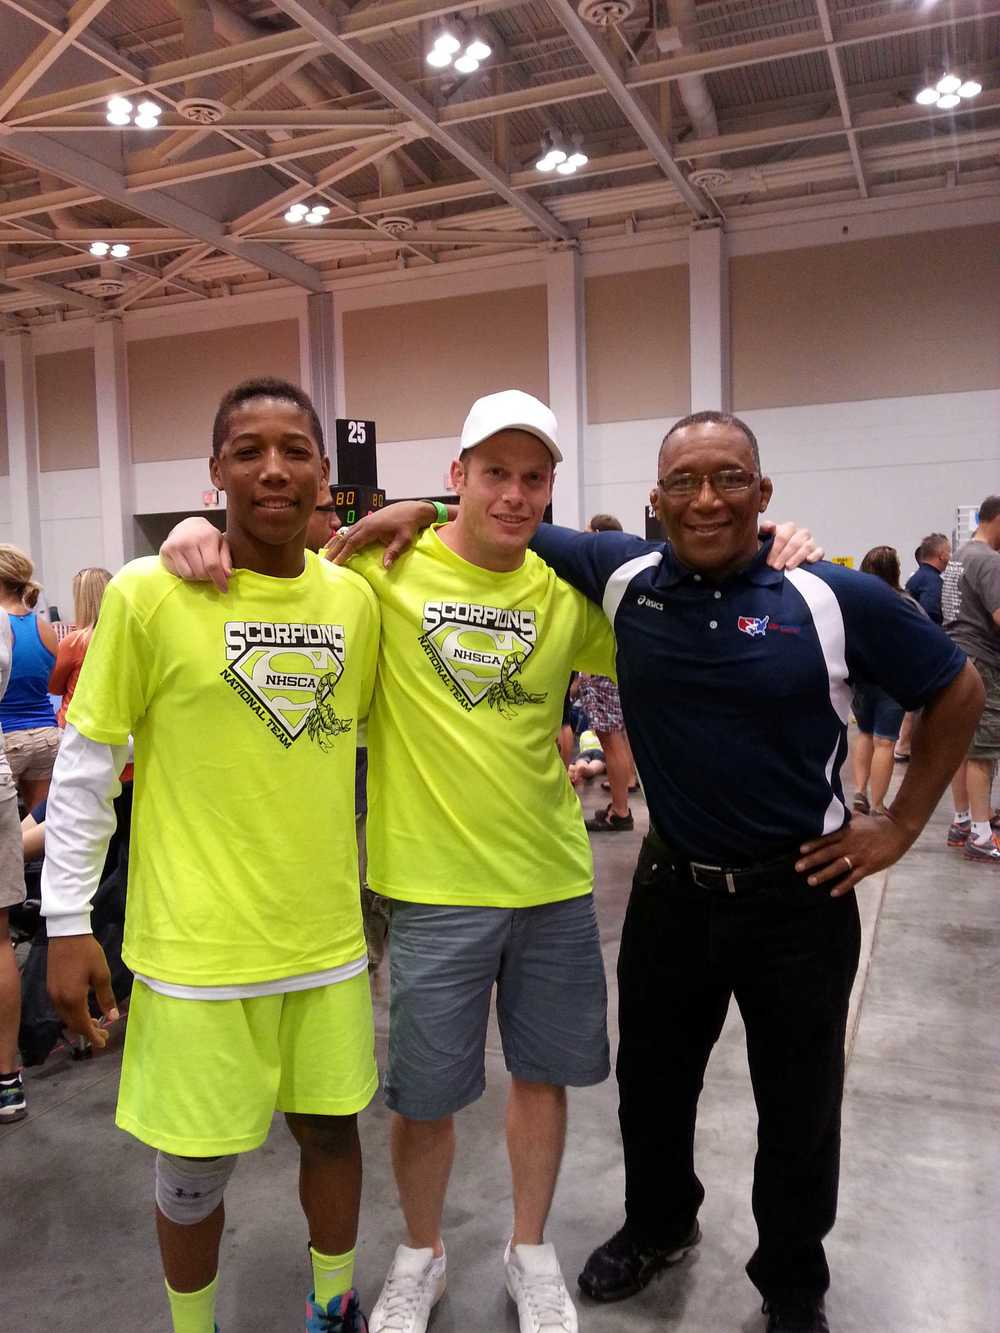 David Carr and his Father, Nate Carr. Nate is an Olympic Bronze Medalist and a 3x NCAA D1 National Champion.